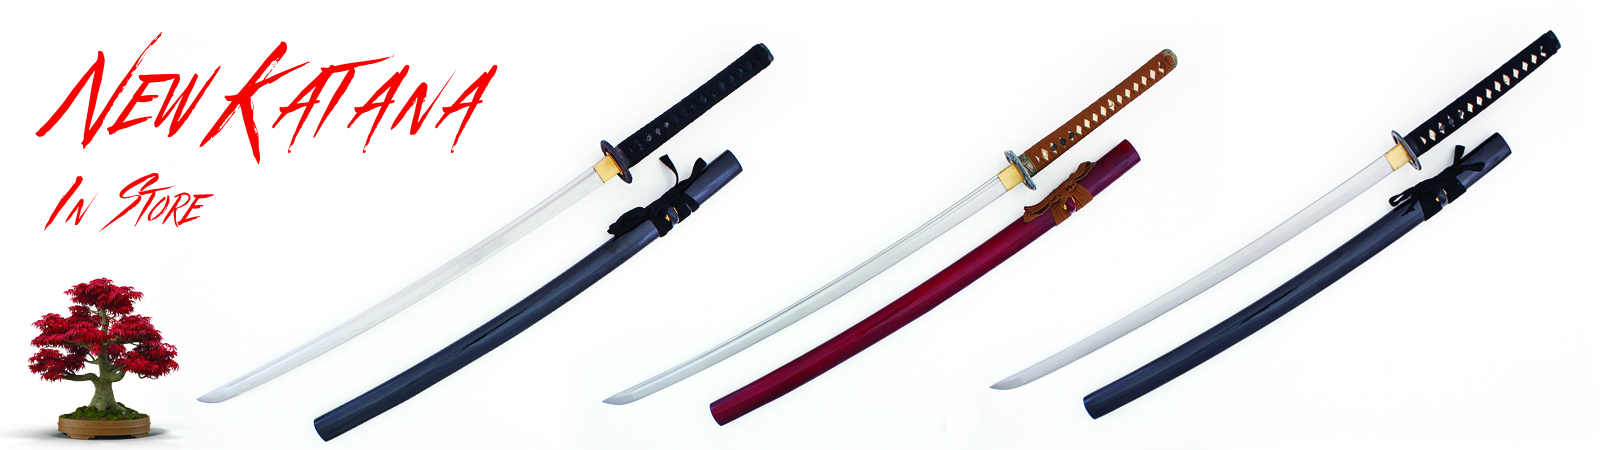 Swords & Knives Online - Hand forged Katana - Damascus Steel Knives